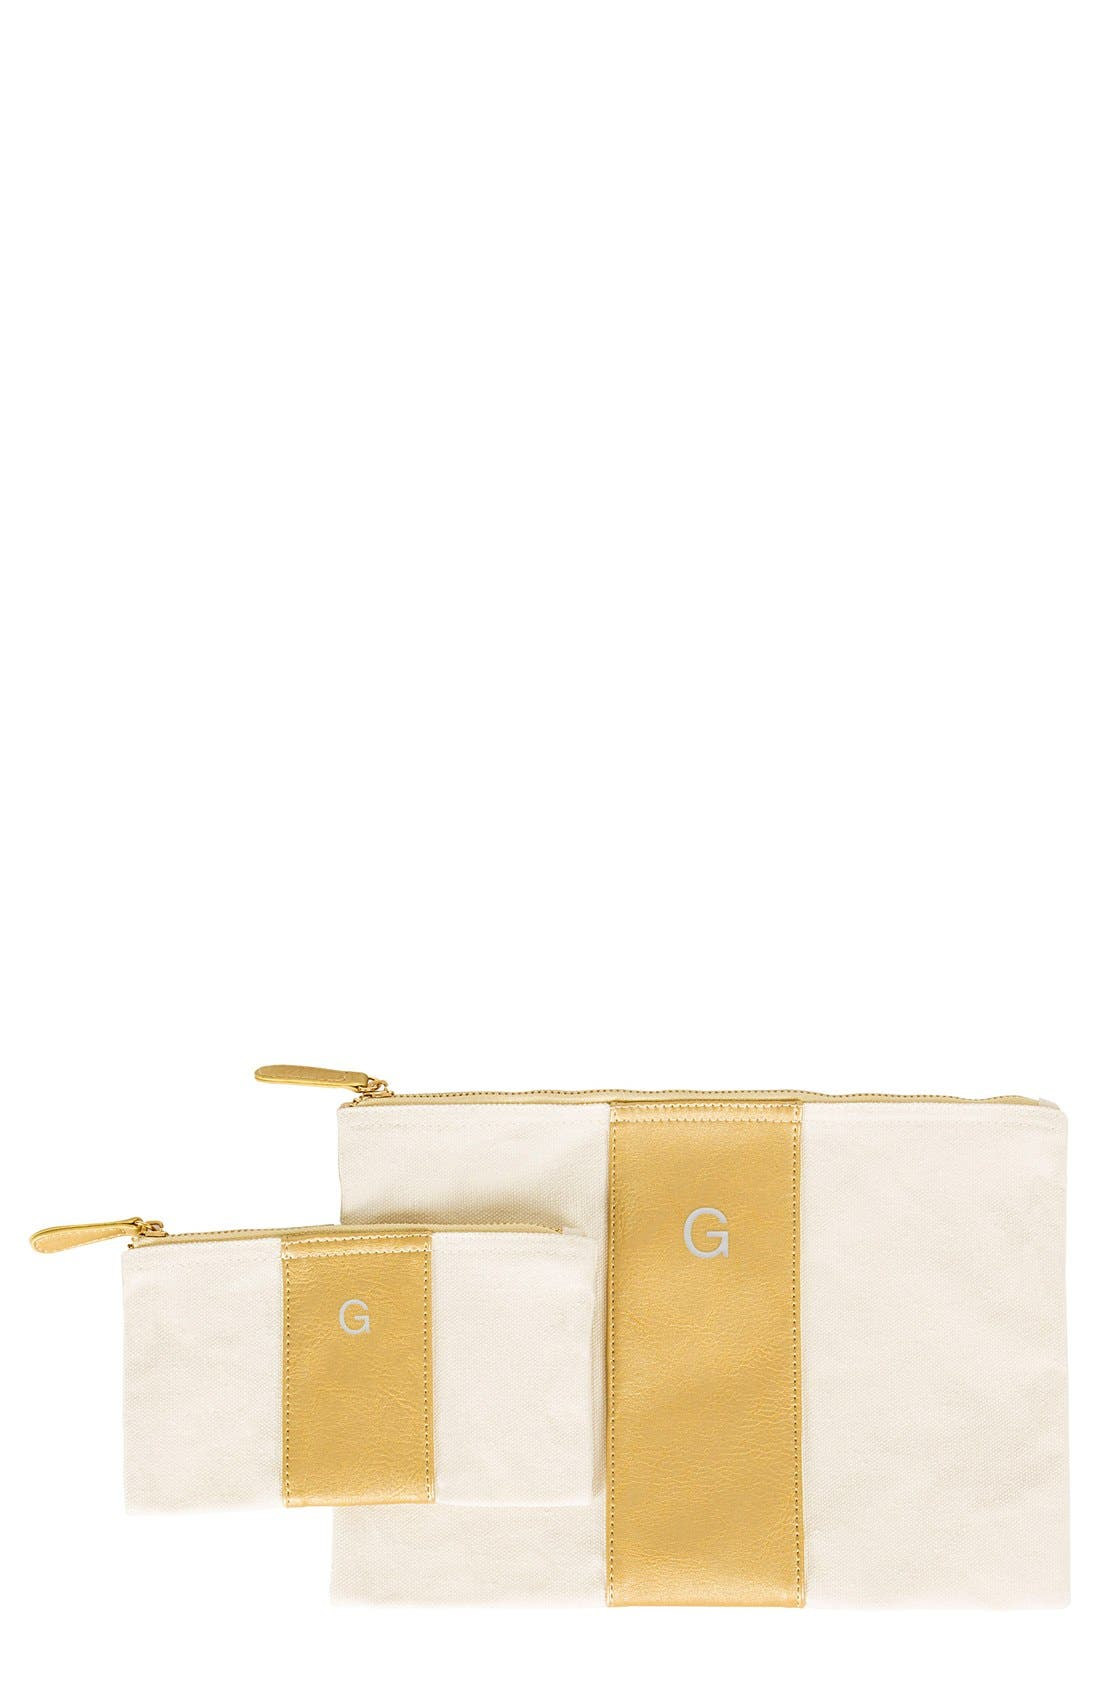 Personalized Faux Leather Clutch,                             Main thumbnail 45, color,